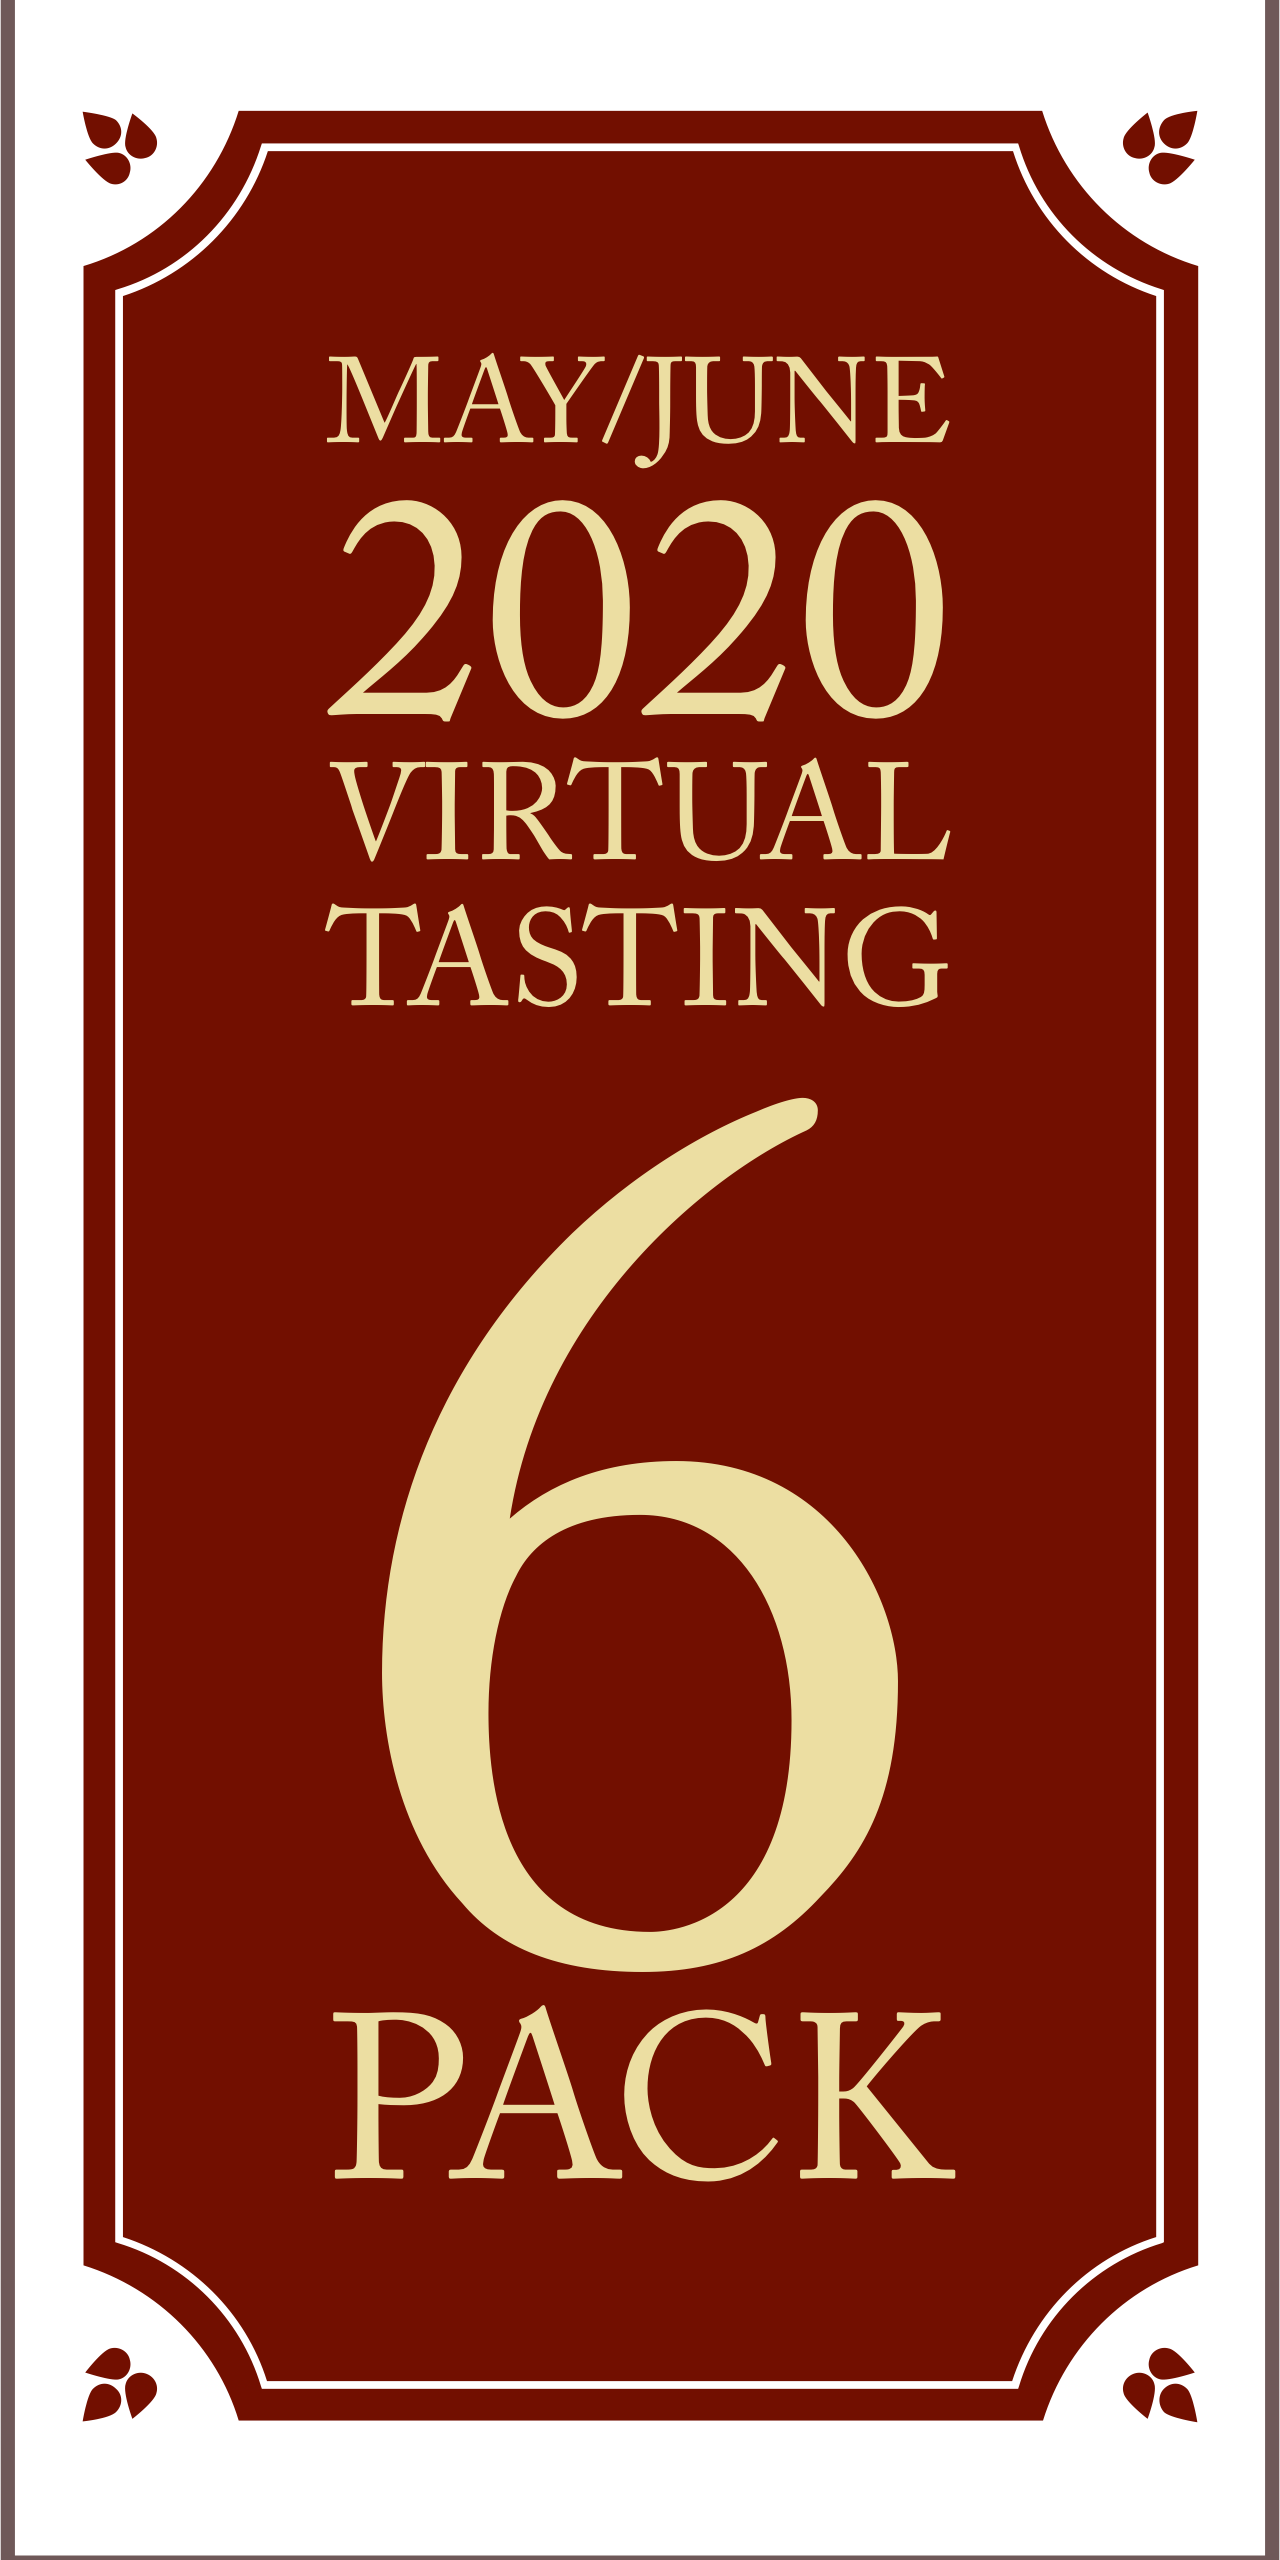 May/June 2020 Virtual Tasting 6 pack #3 (6x750ml)